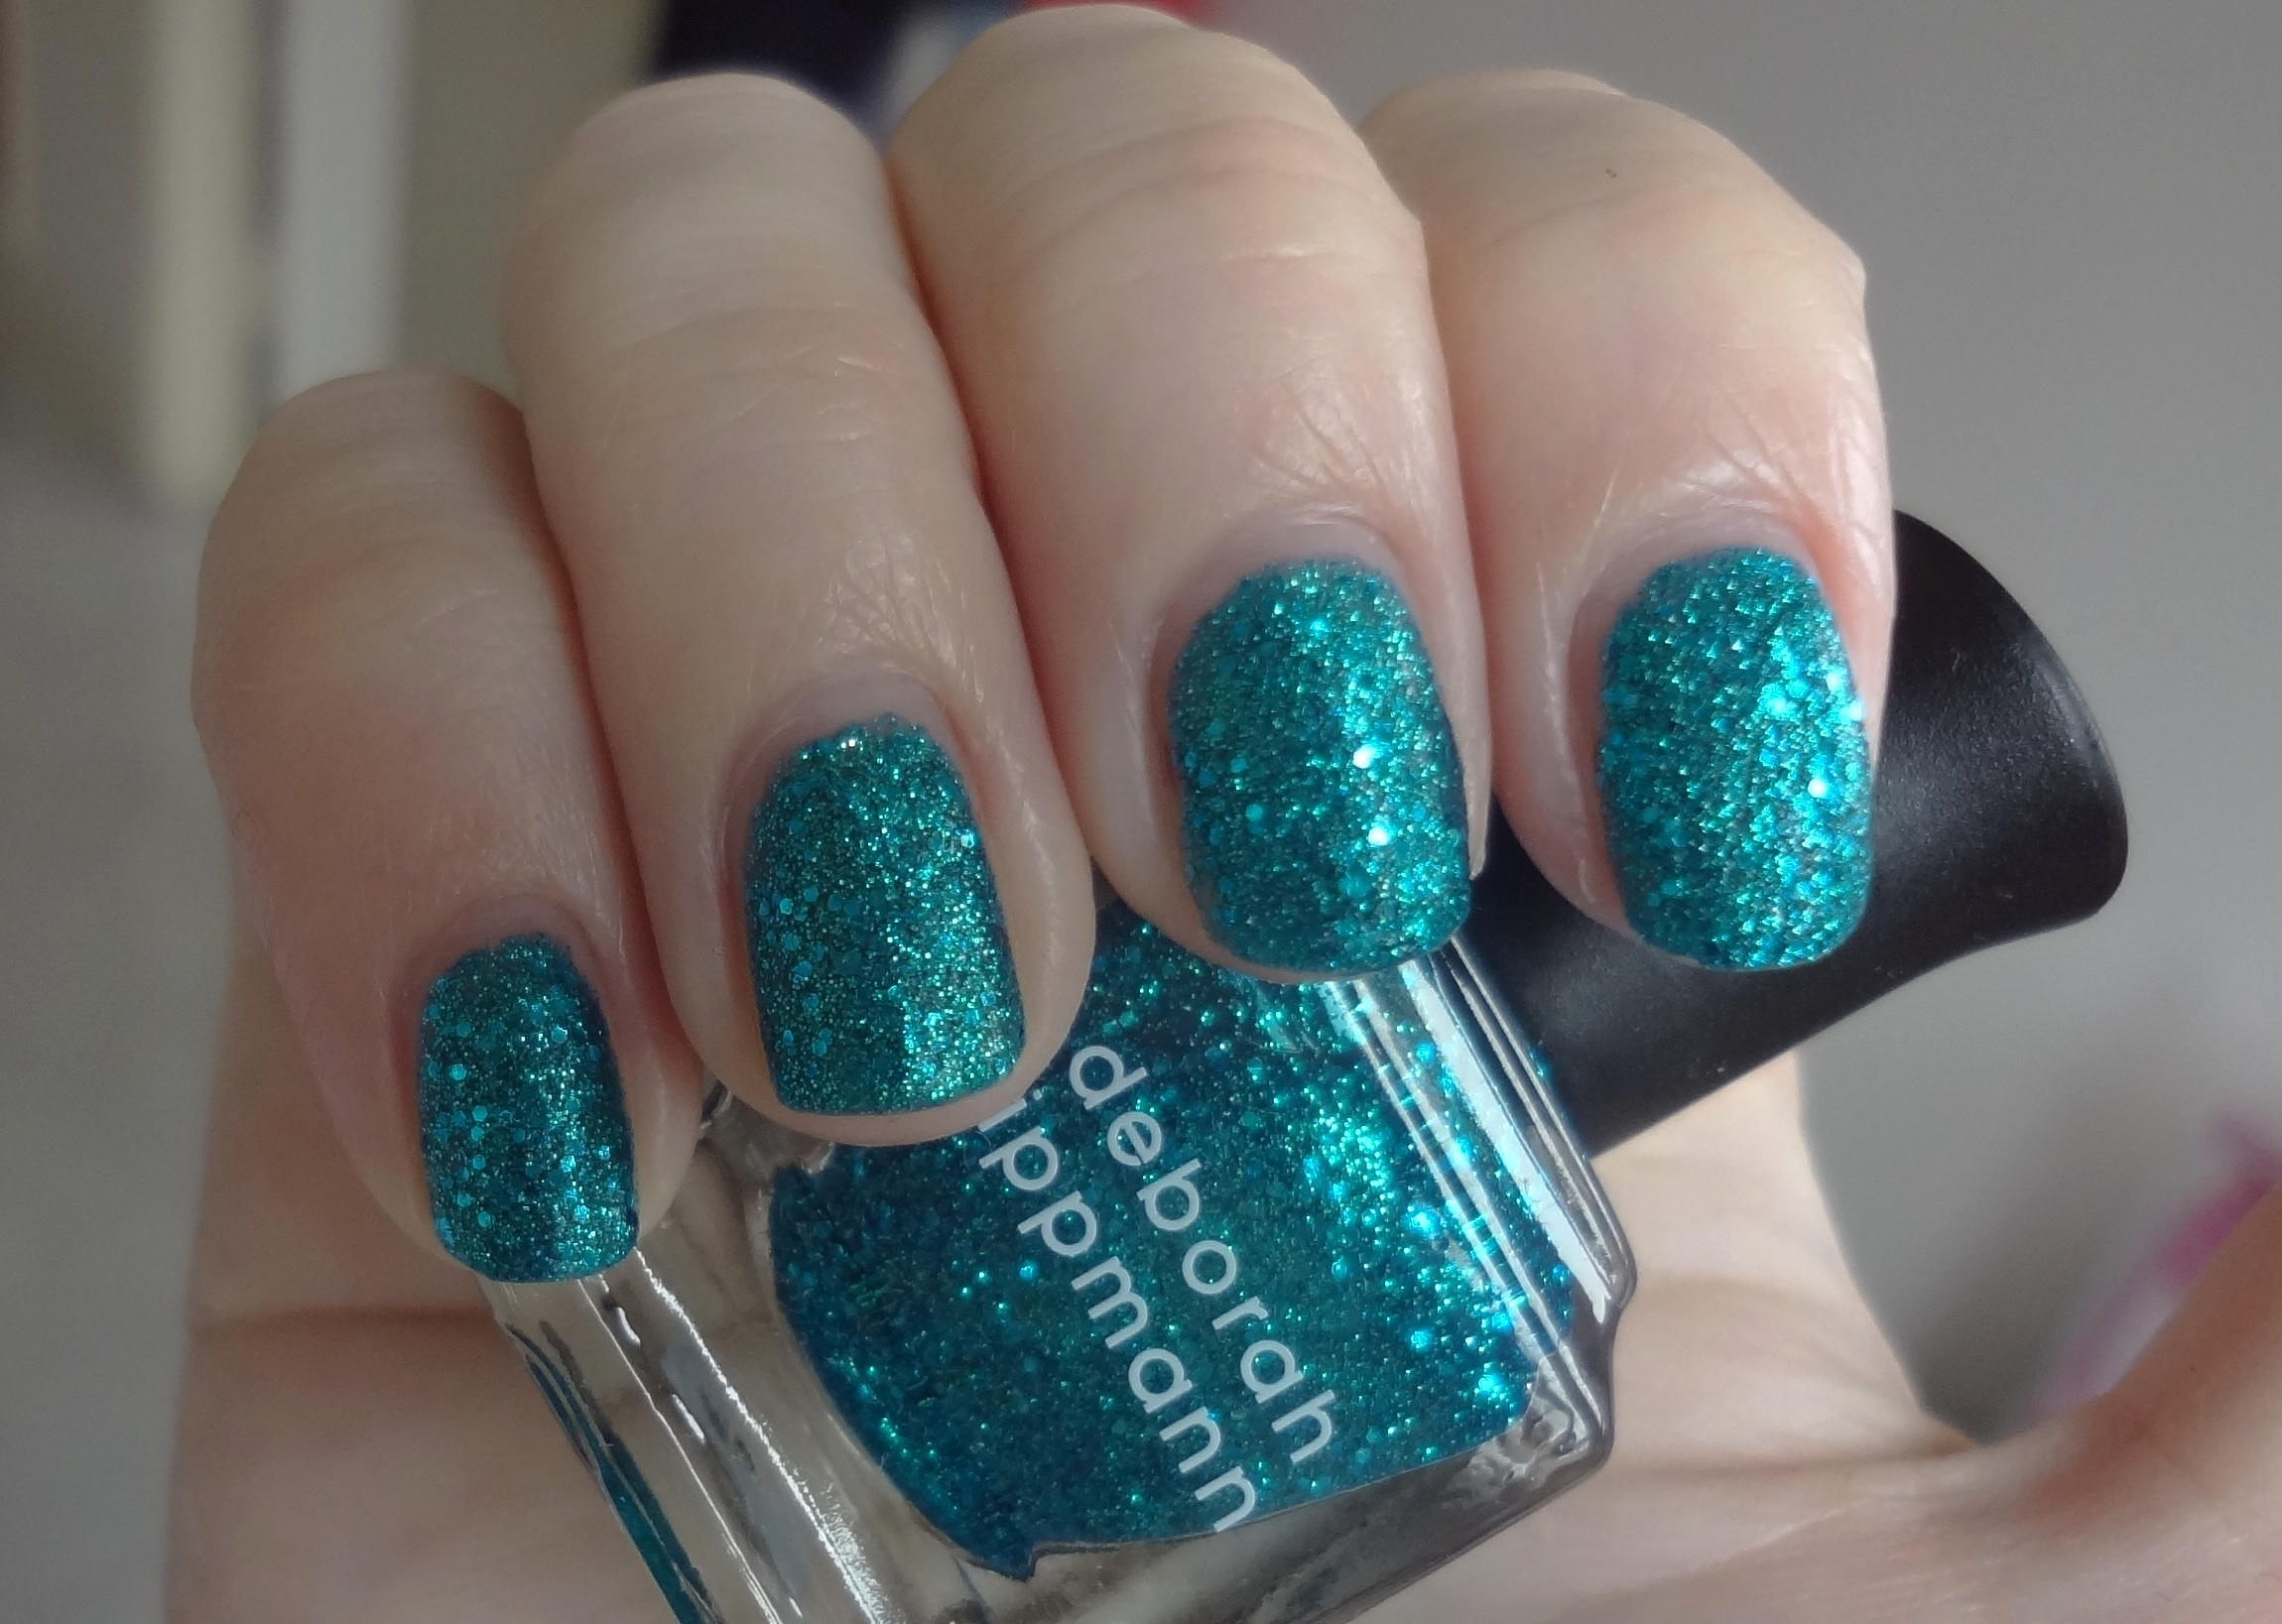 Deborah Lippmann Just Dance nail polish review | Through The Looking ...